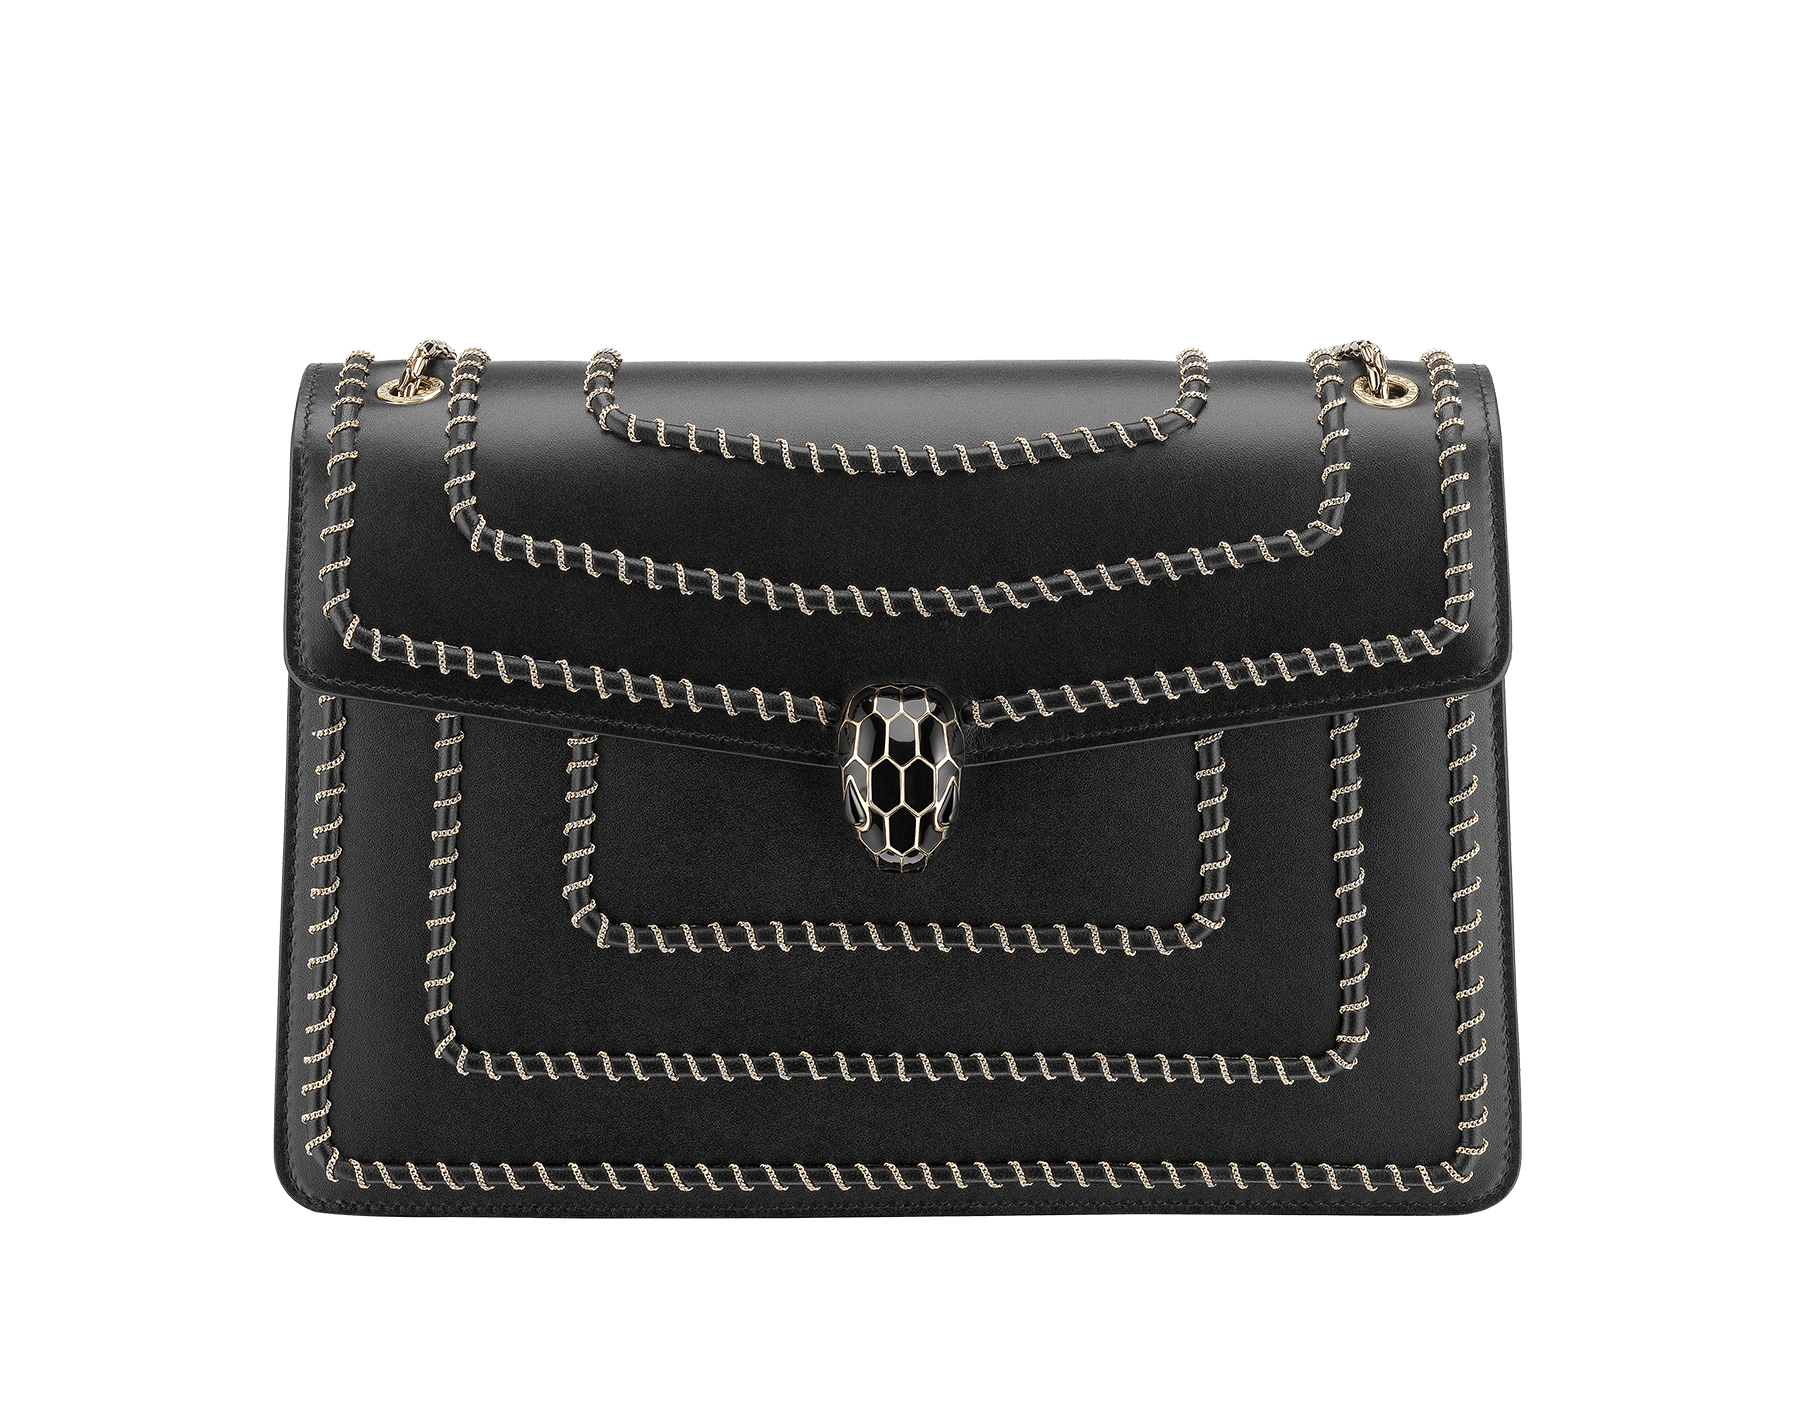 """Serpenti Forever"" shoulder bag in black calf leather, featuring a Woven Chain motif. Iconic snakehead closure in light gold plated brass enriched with black enamel and black onyx eyes 521-WC image 1"